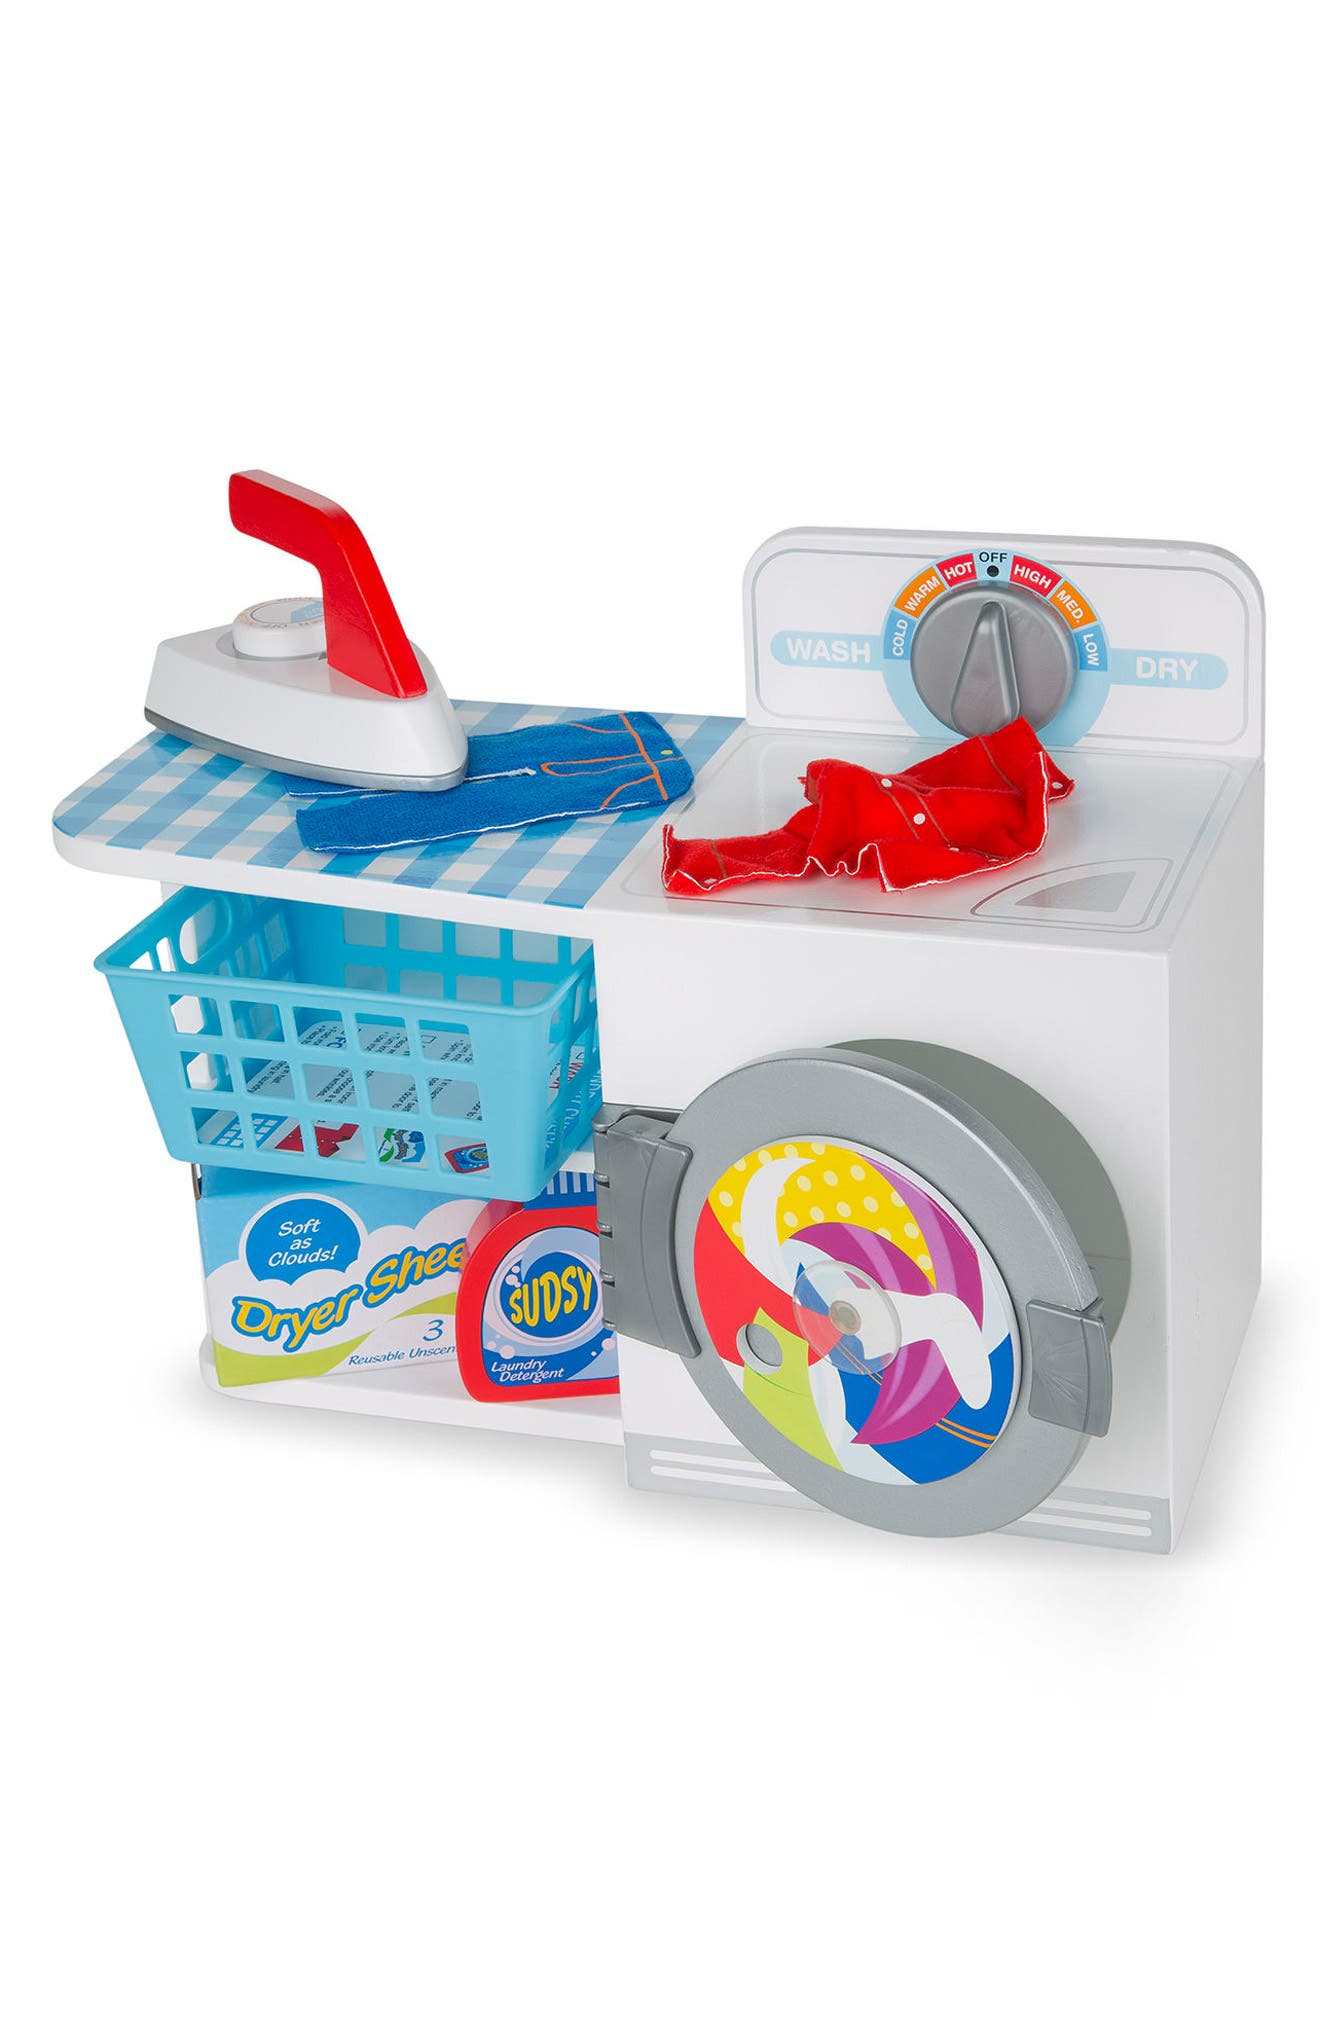 Let's Play House! Wash, Dry & Iron 8-Piece Play Set,                             Main thumbnail 1, color,                             100